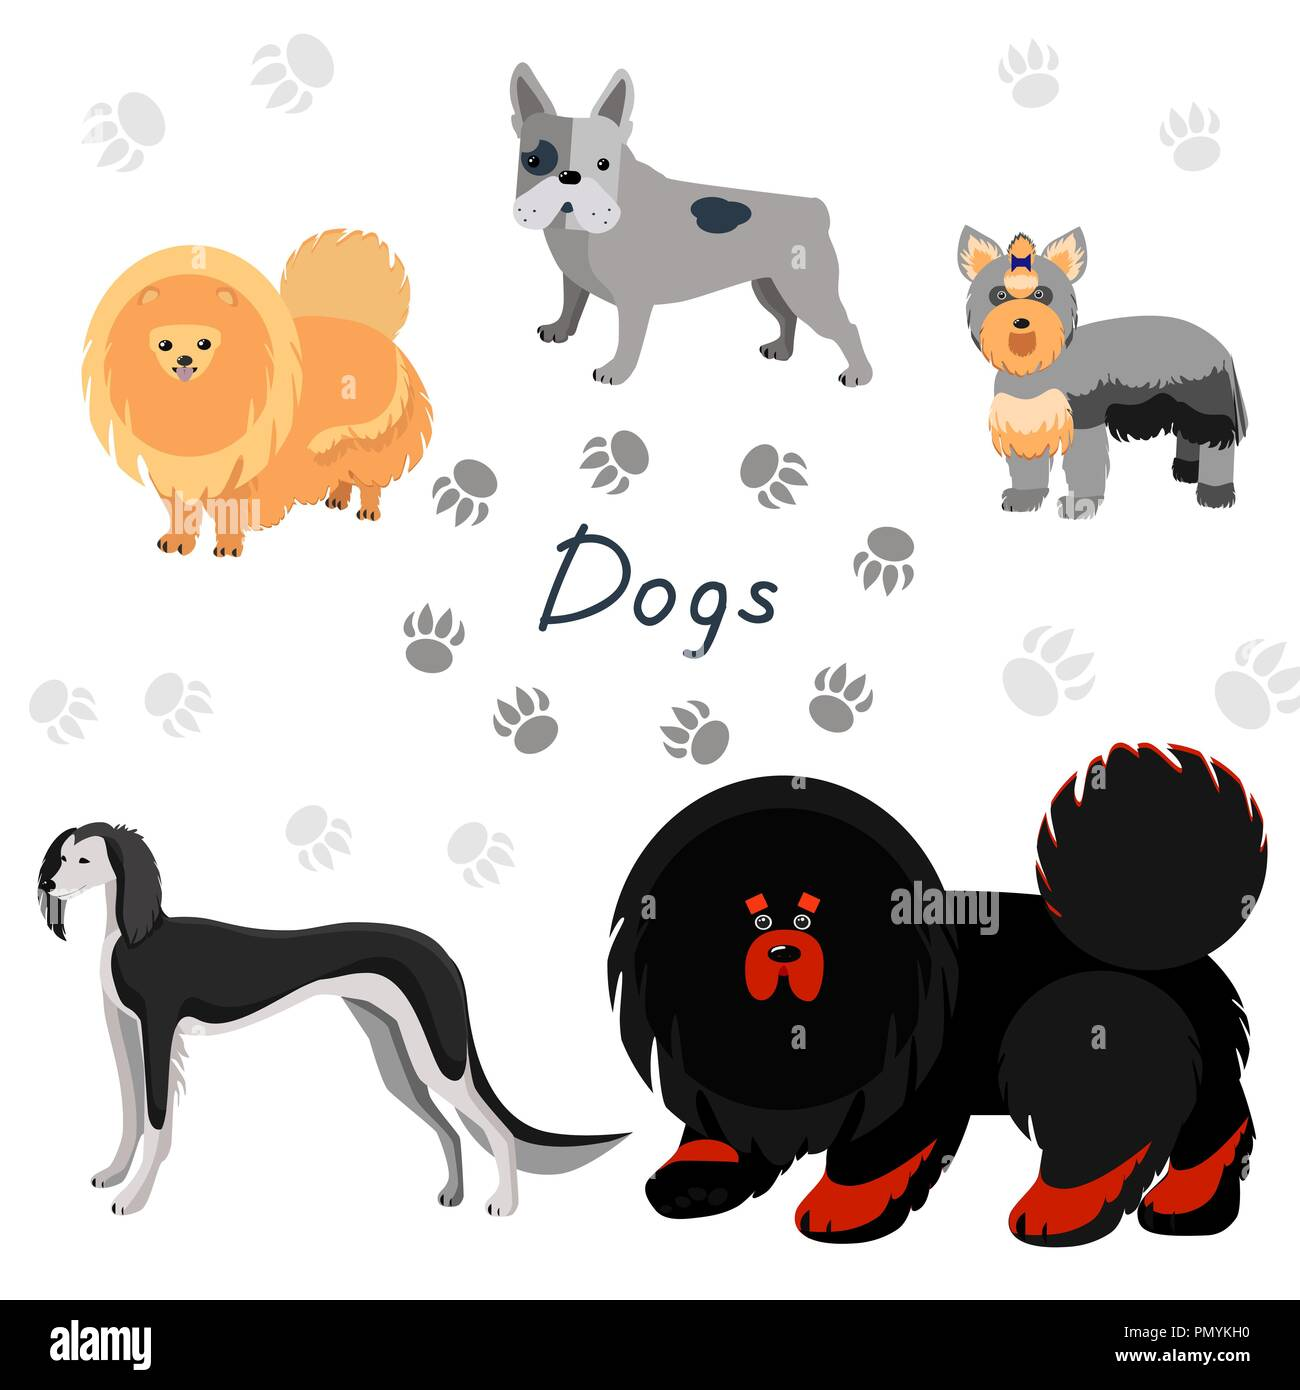 Dogs collection in flat style. Set of dog breeds isolated on white background. - Stock Vector